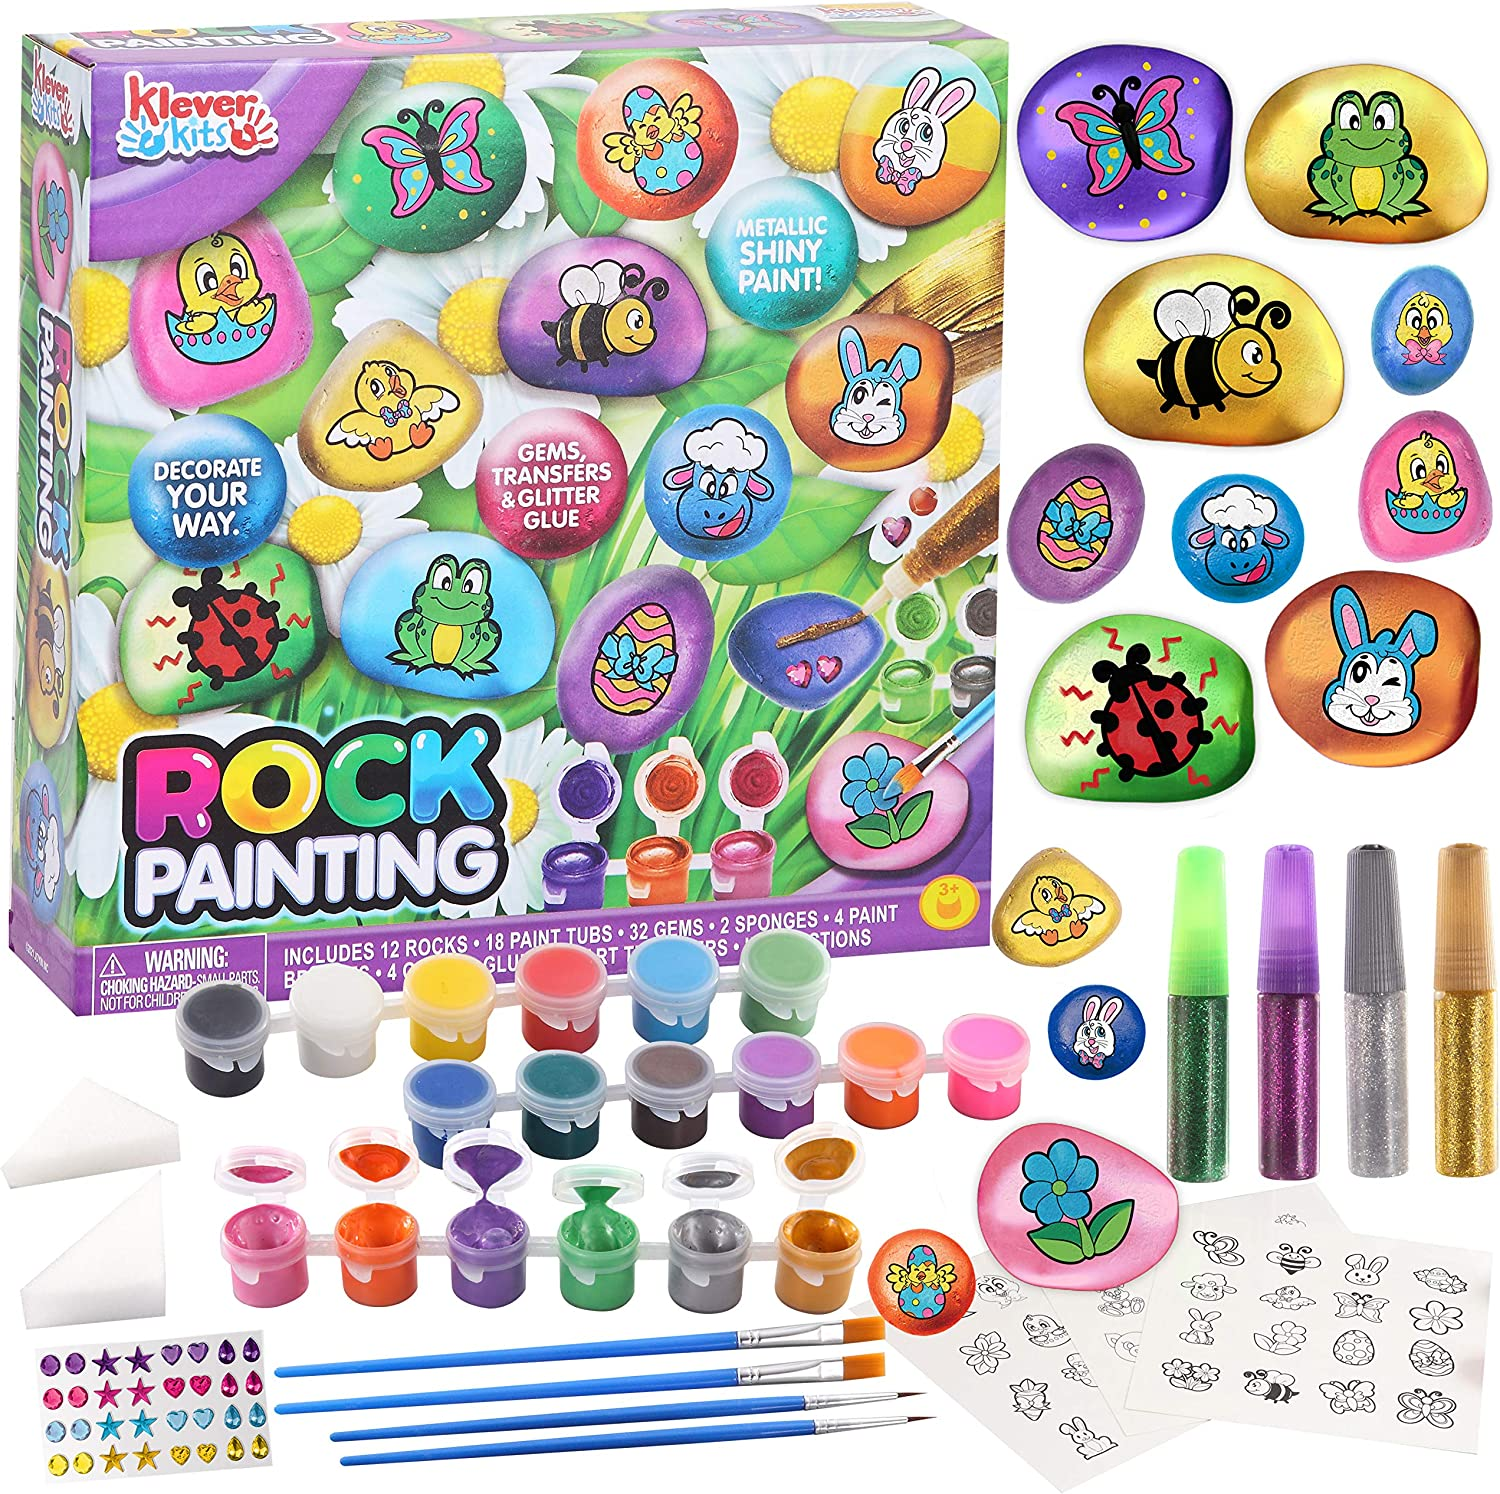 Klever Kits JOYIN 12 Rock Painting Kit, Spring Crafts for Kids, Creativity Arts&Crafts DIY Supplies with 18 Paints Decorate Your Own for Kids, Painting Gifts Family Activity Birthday Present